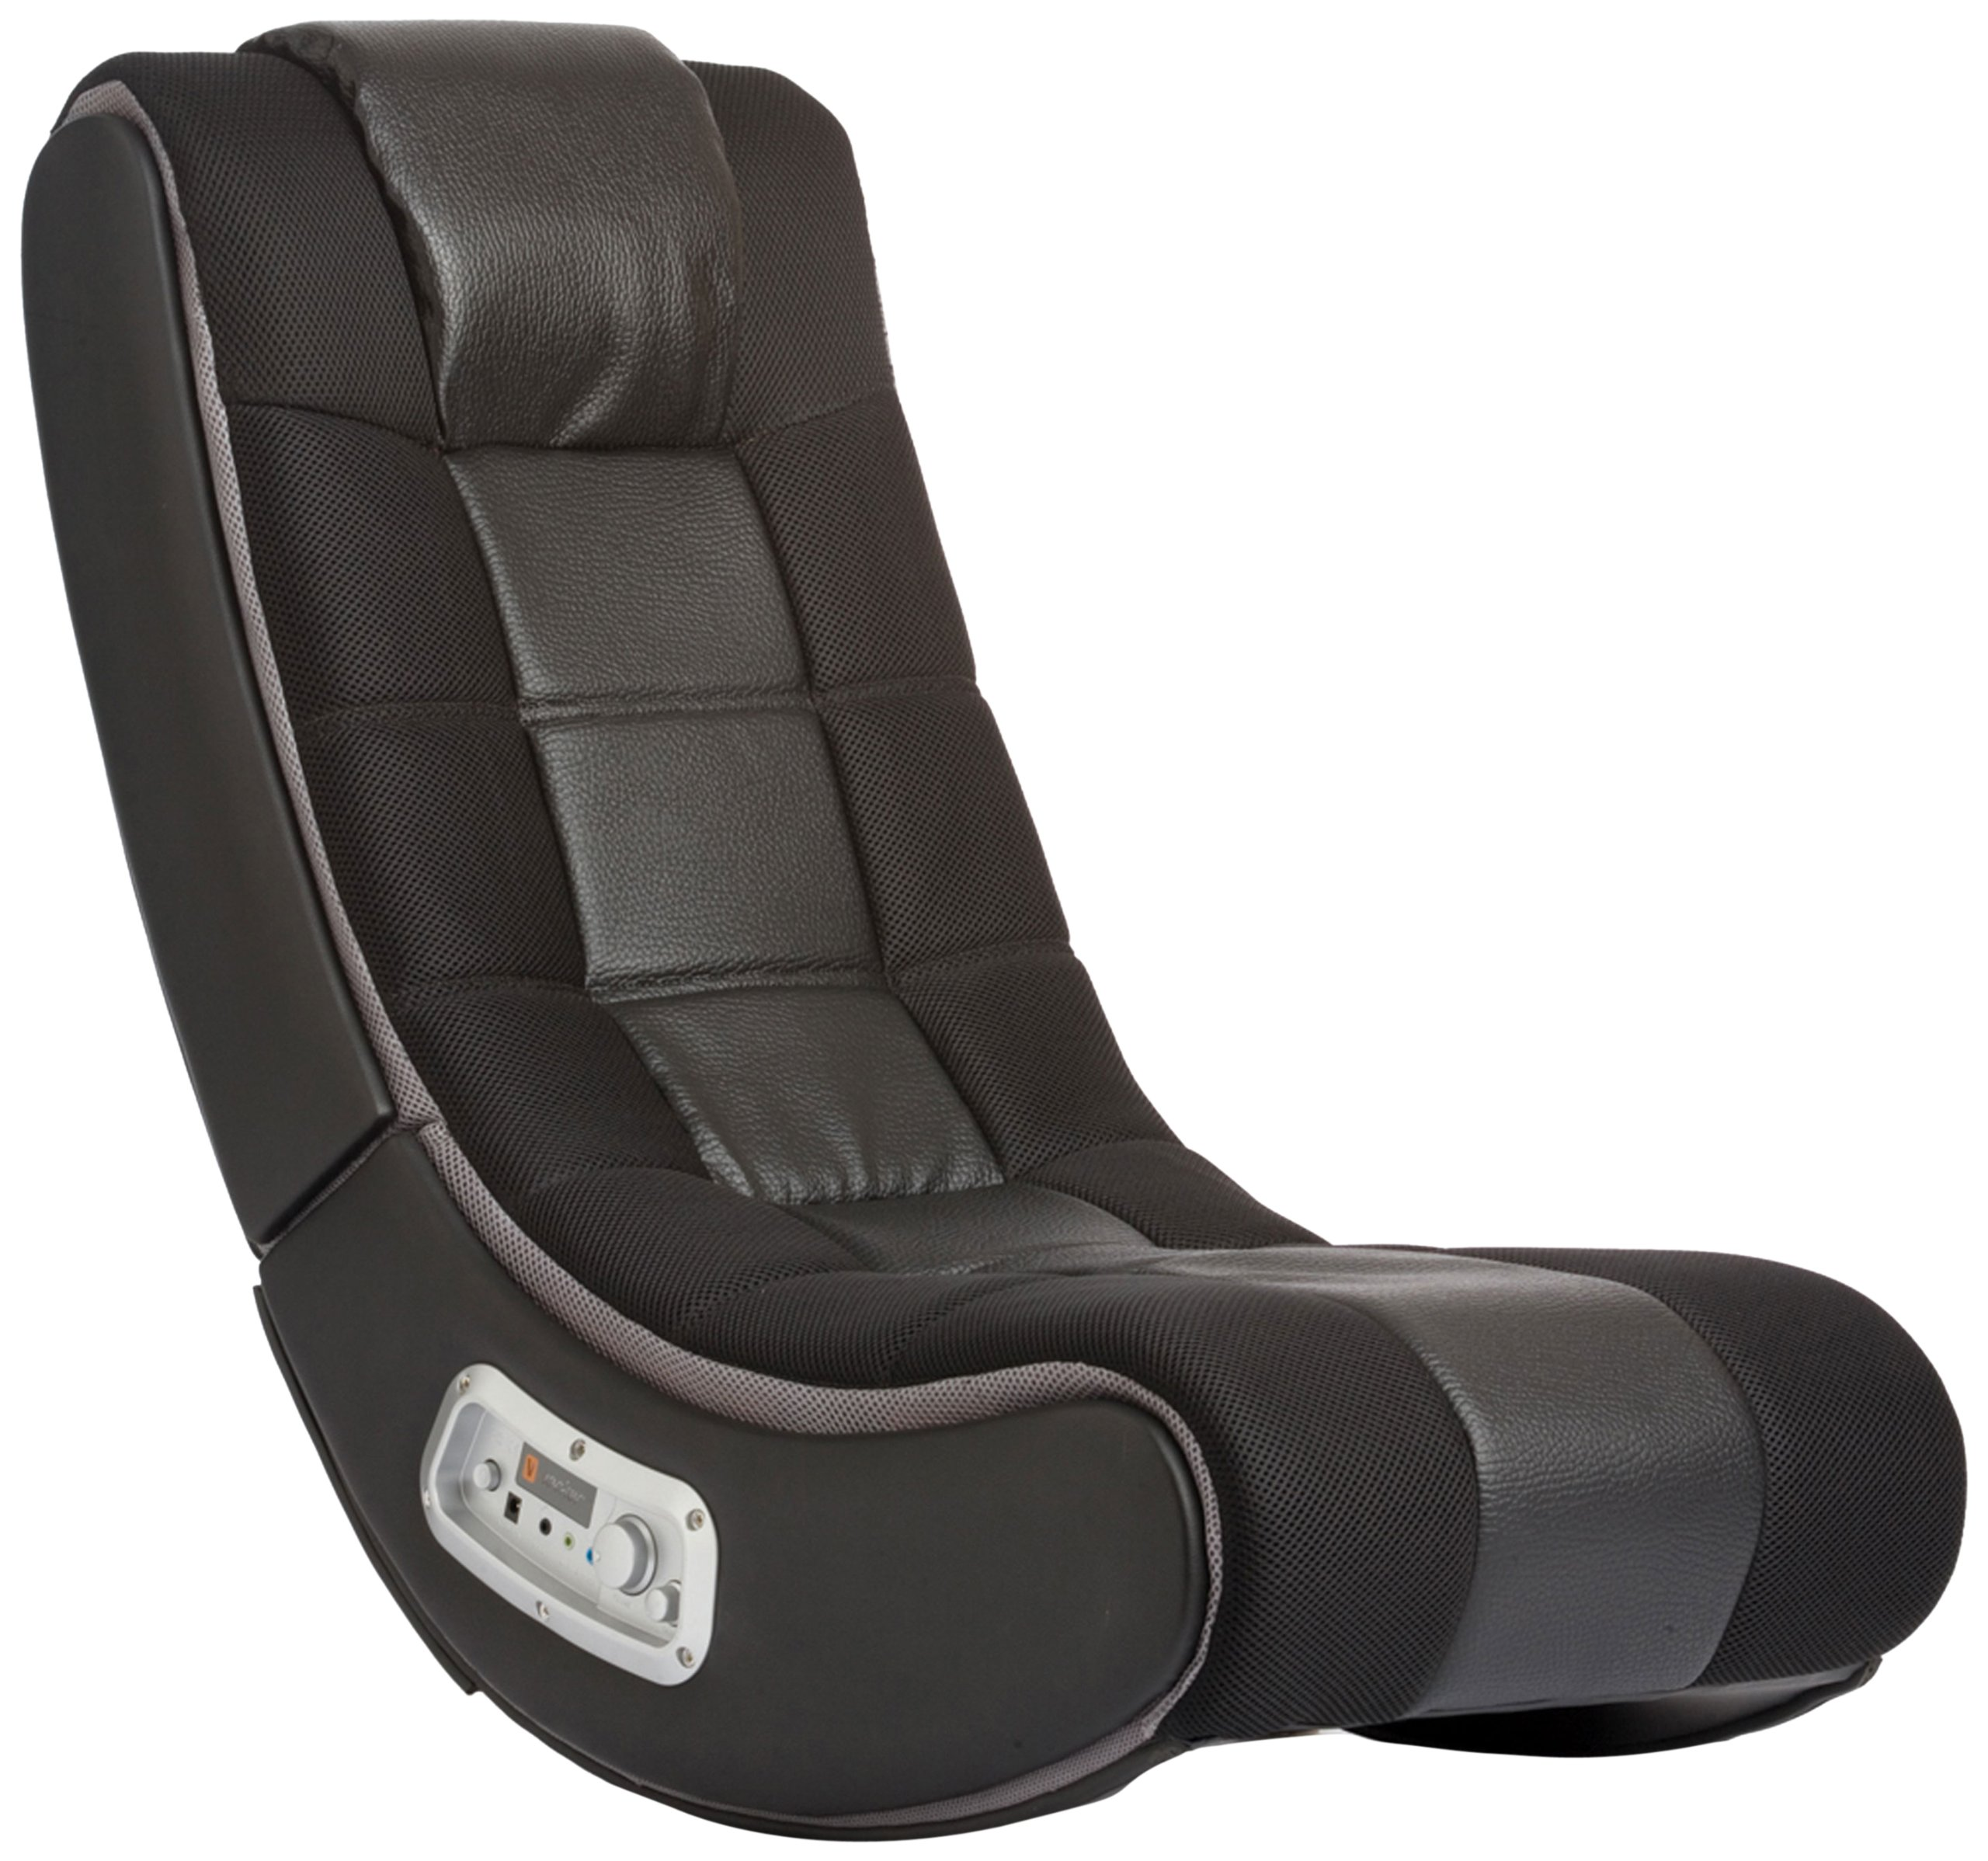 V Rocker 5130301 SE Video Gaming Chair, Wireless, Black with Grey